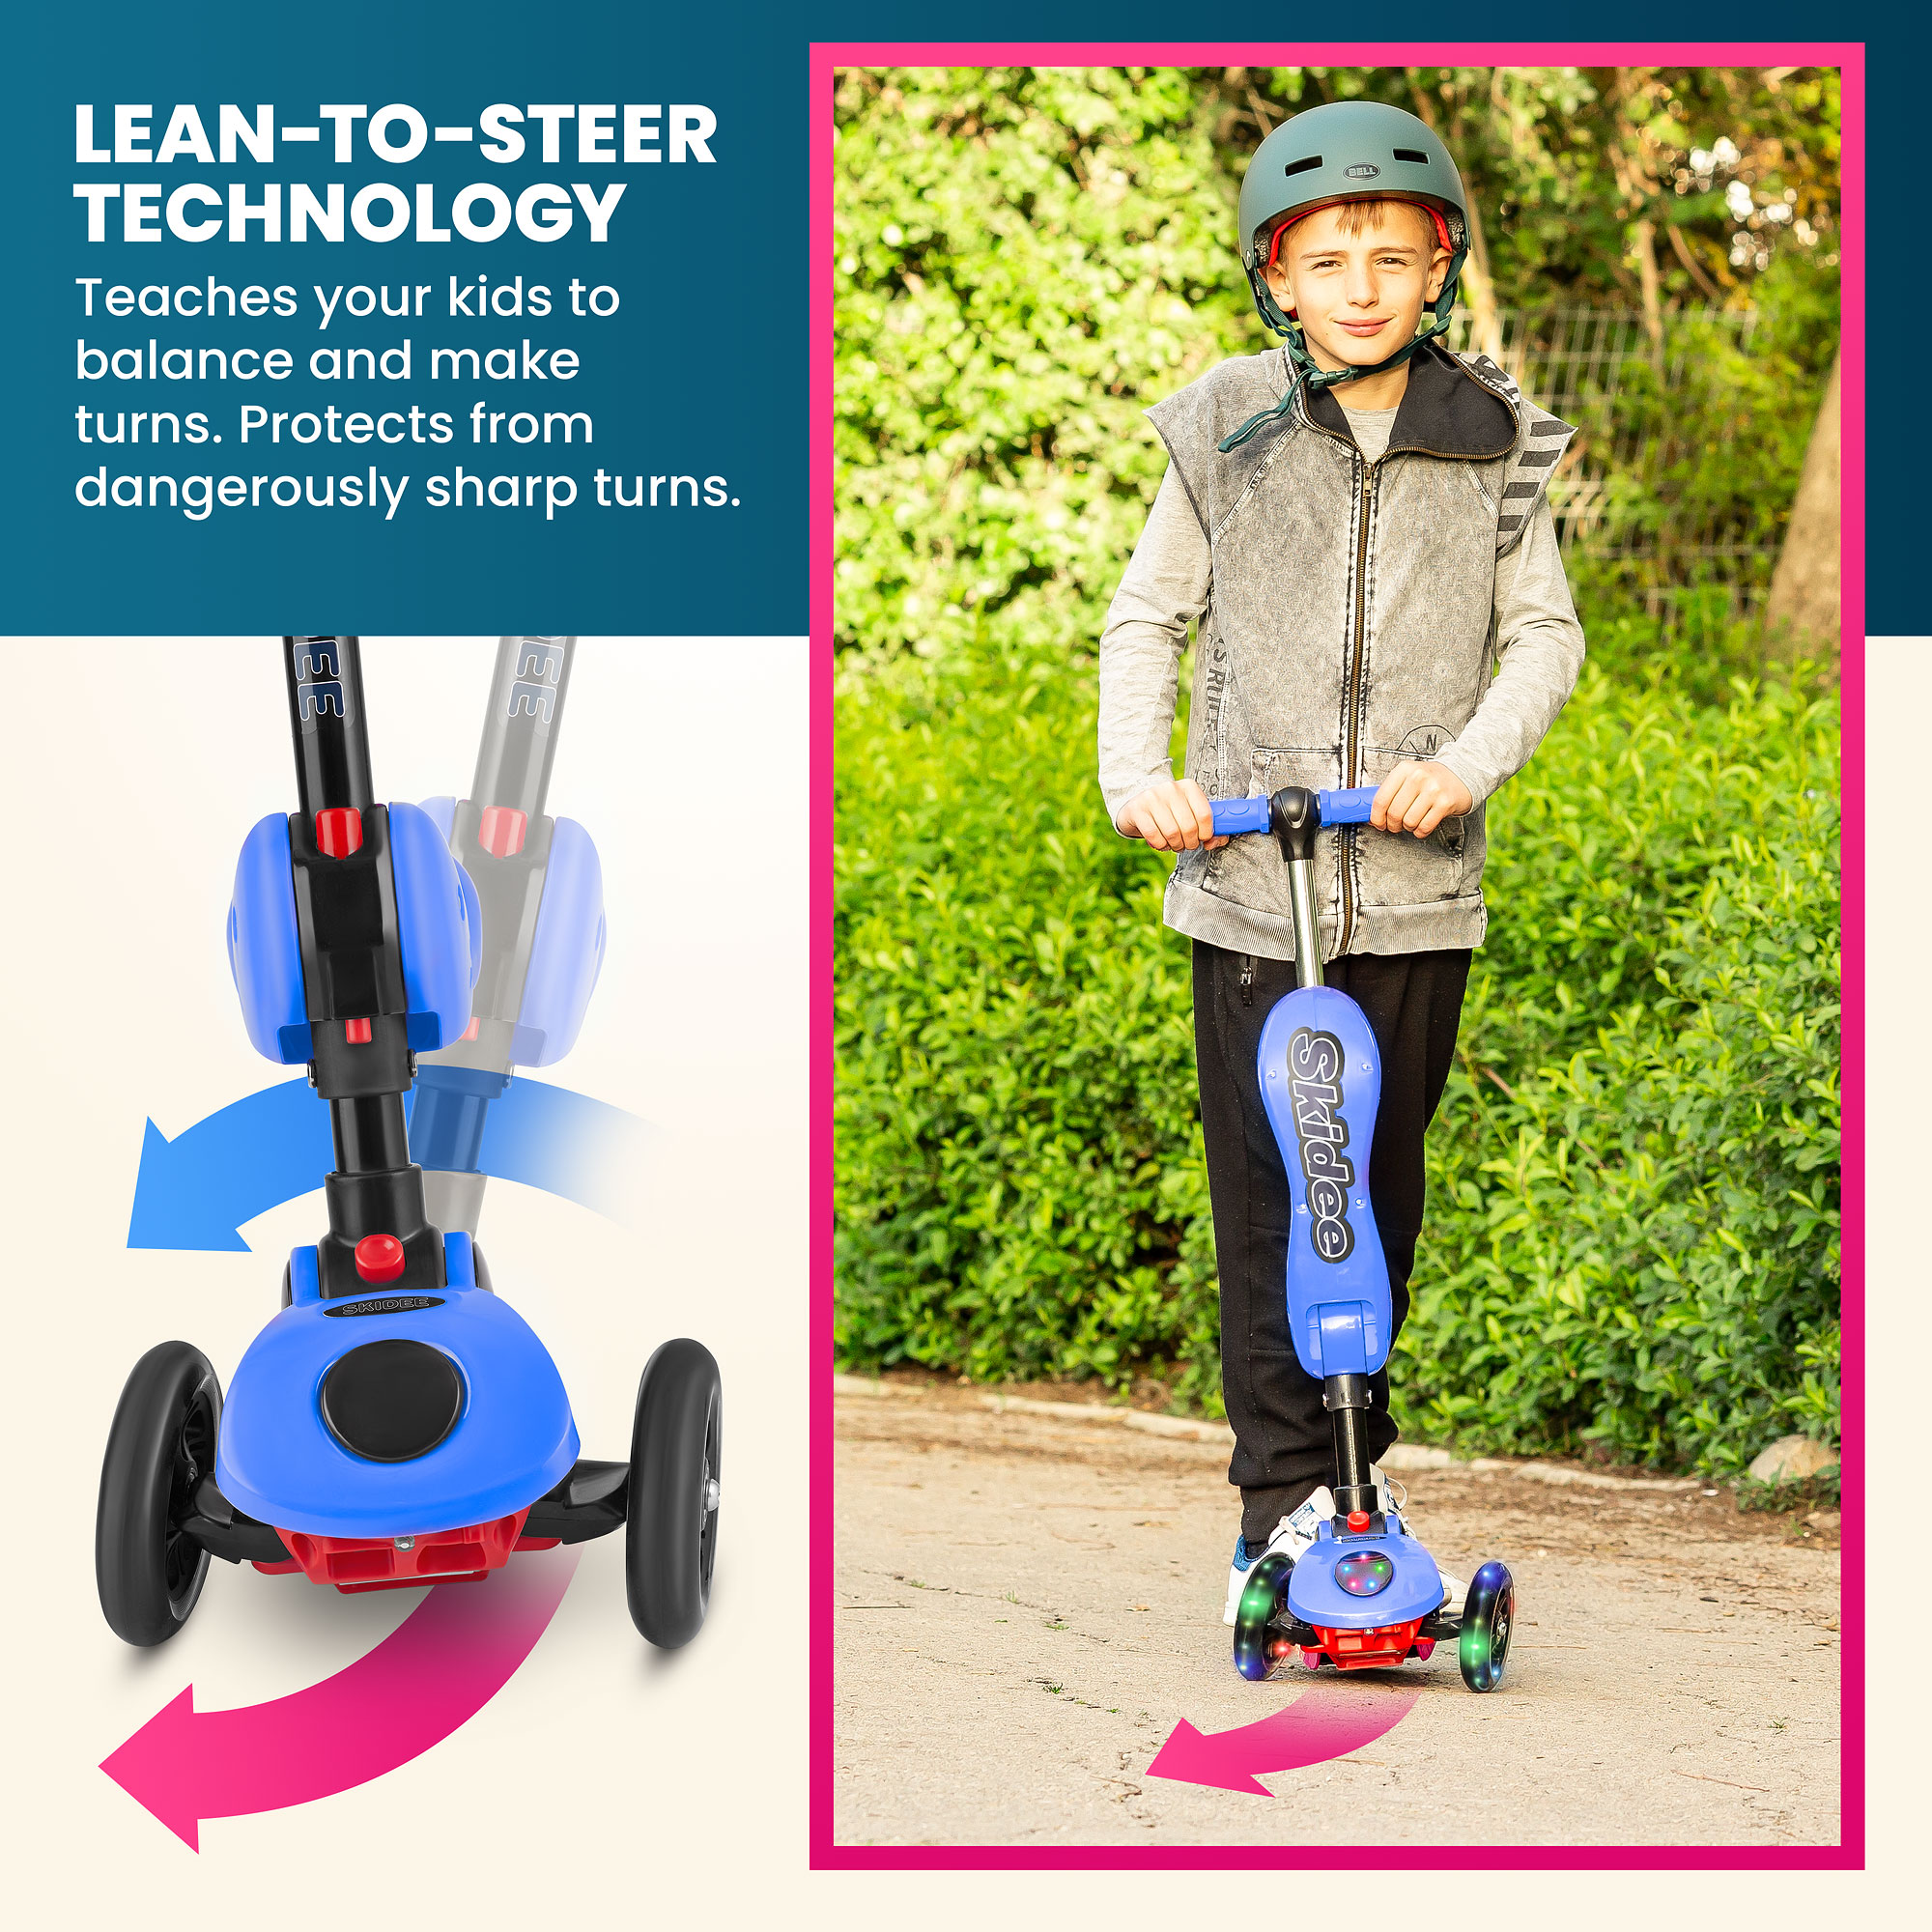 Y100 2-in-1 Scooter for Kids with Folding Removable Seat ZERO ASSEMBLY Adjustable Height Kick Scooter for Toddlers Girls /& Boys 2-12 Years-Old Fun Outdoor Toys for Kids Fitness 3 LED Flashing Wheels